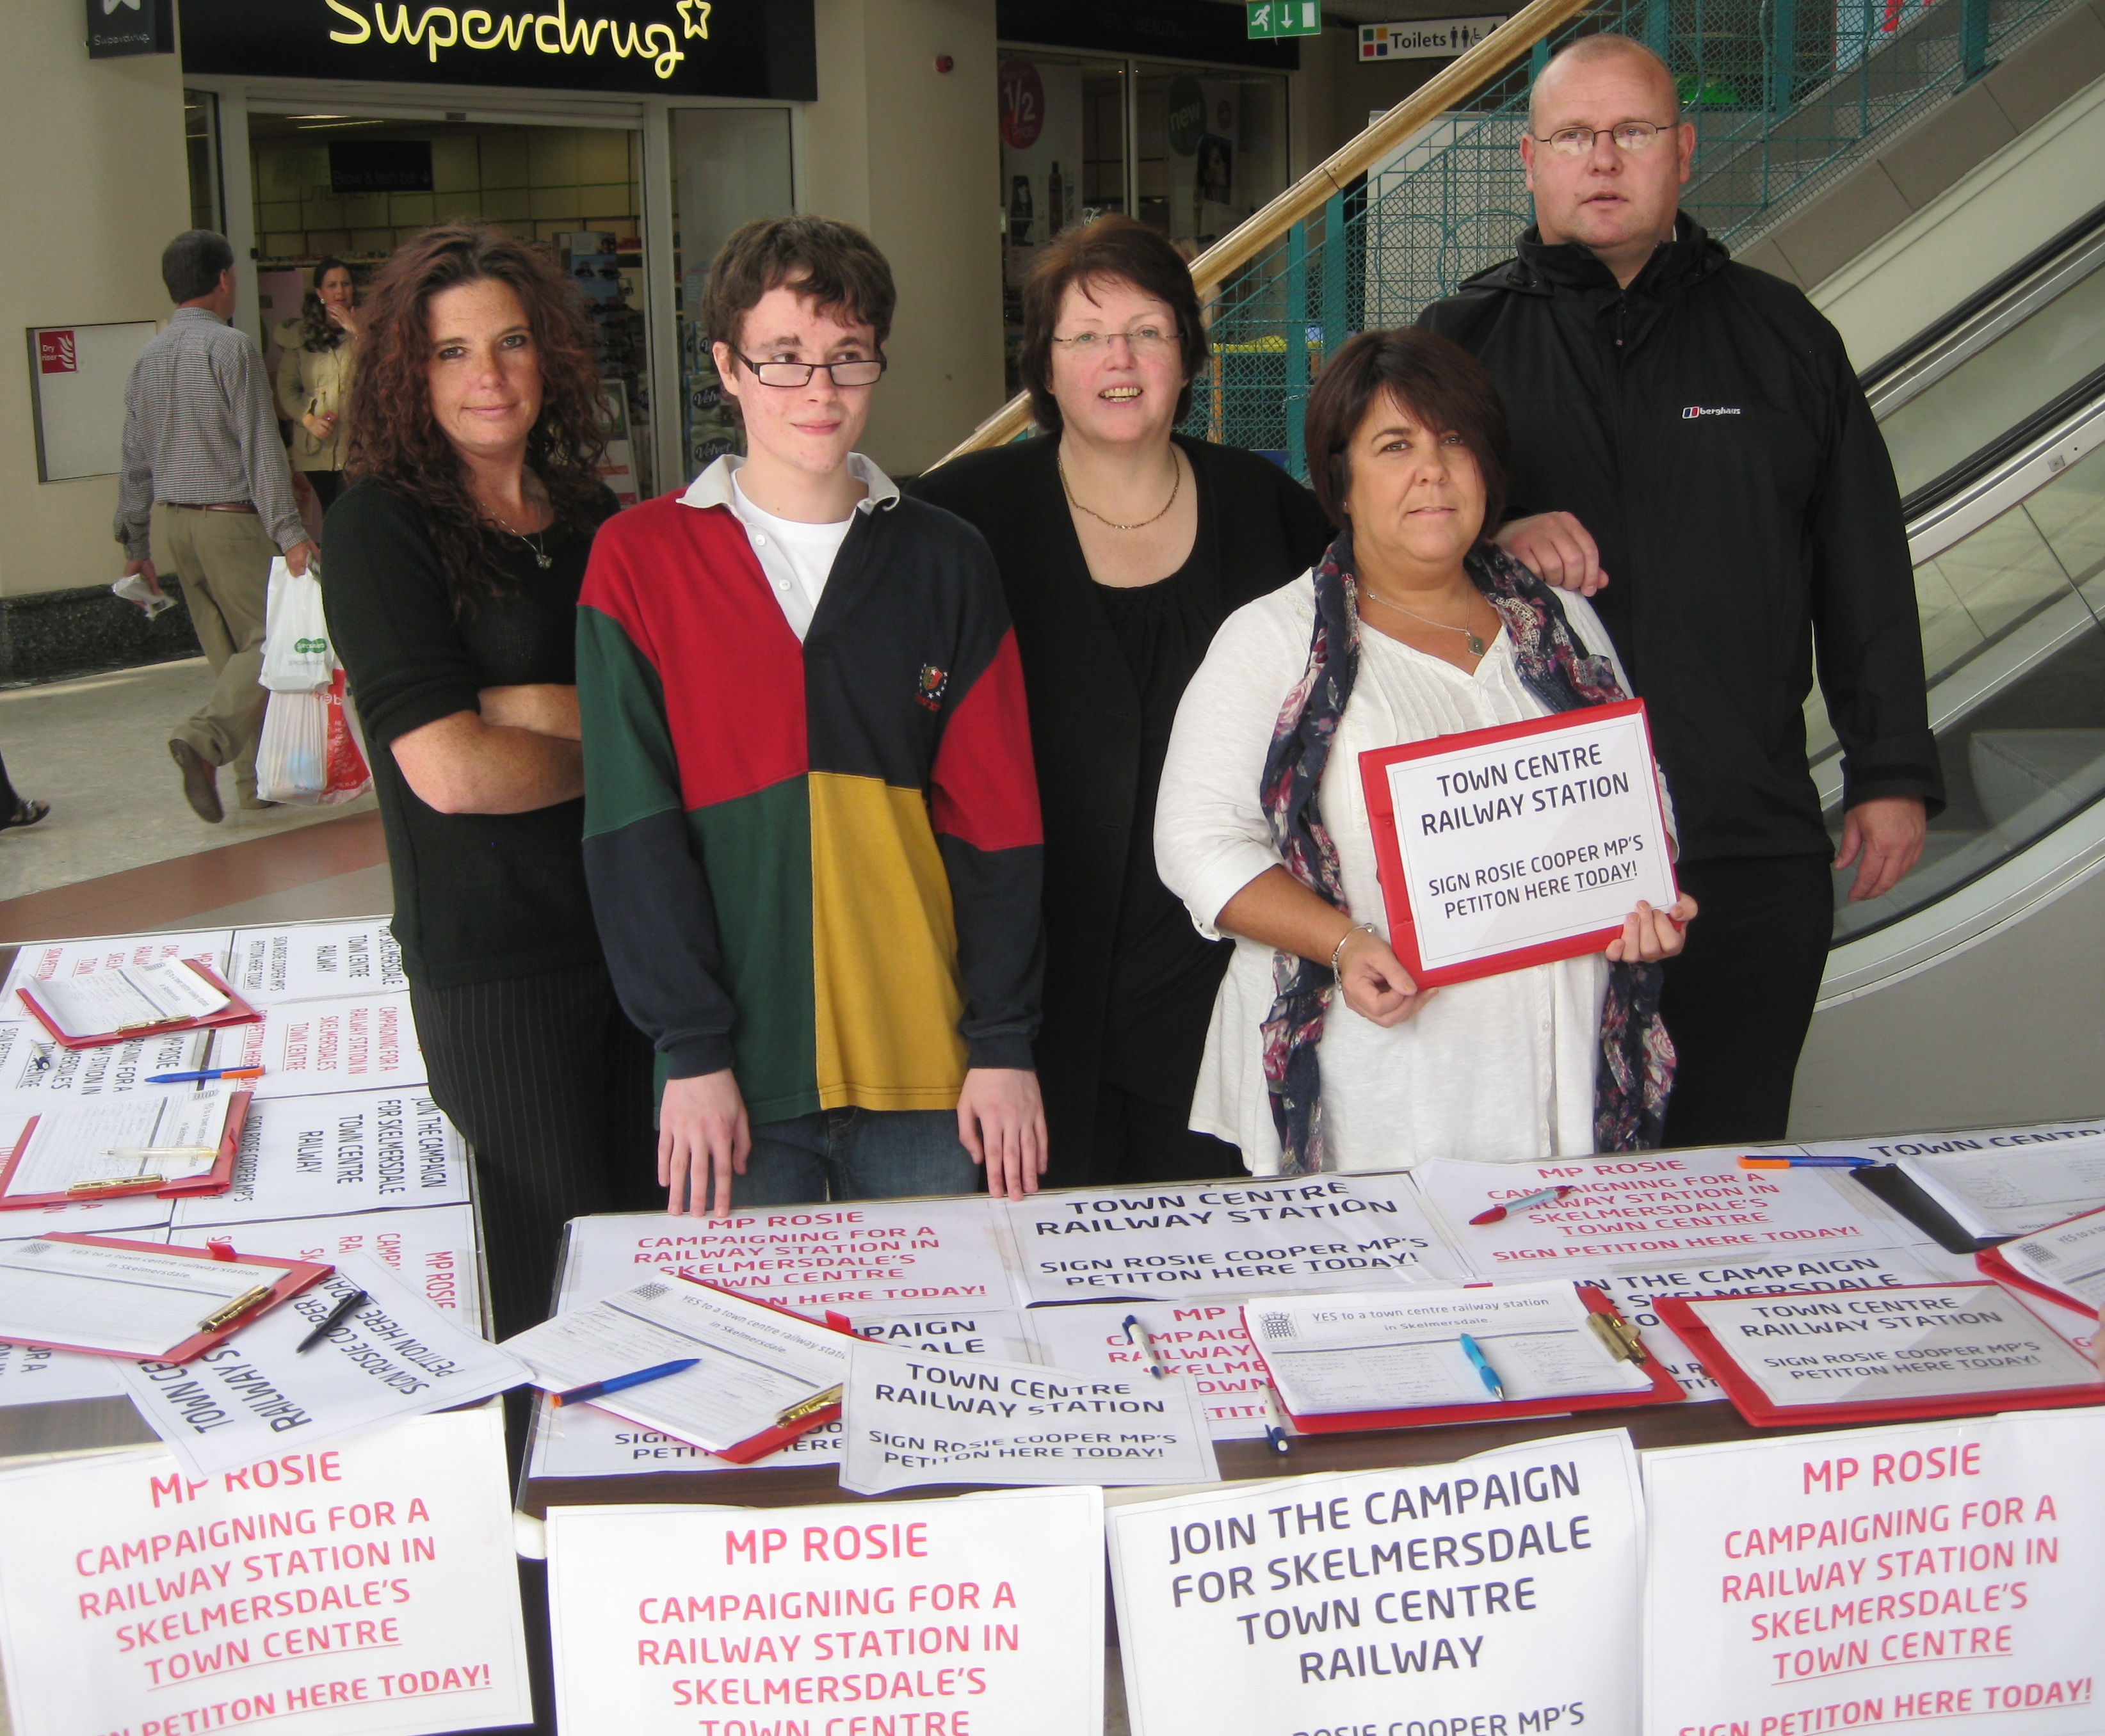 2012.09.15_RC_Skelmersdale_Railway_Petition_Street_Stall.JPG